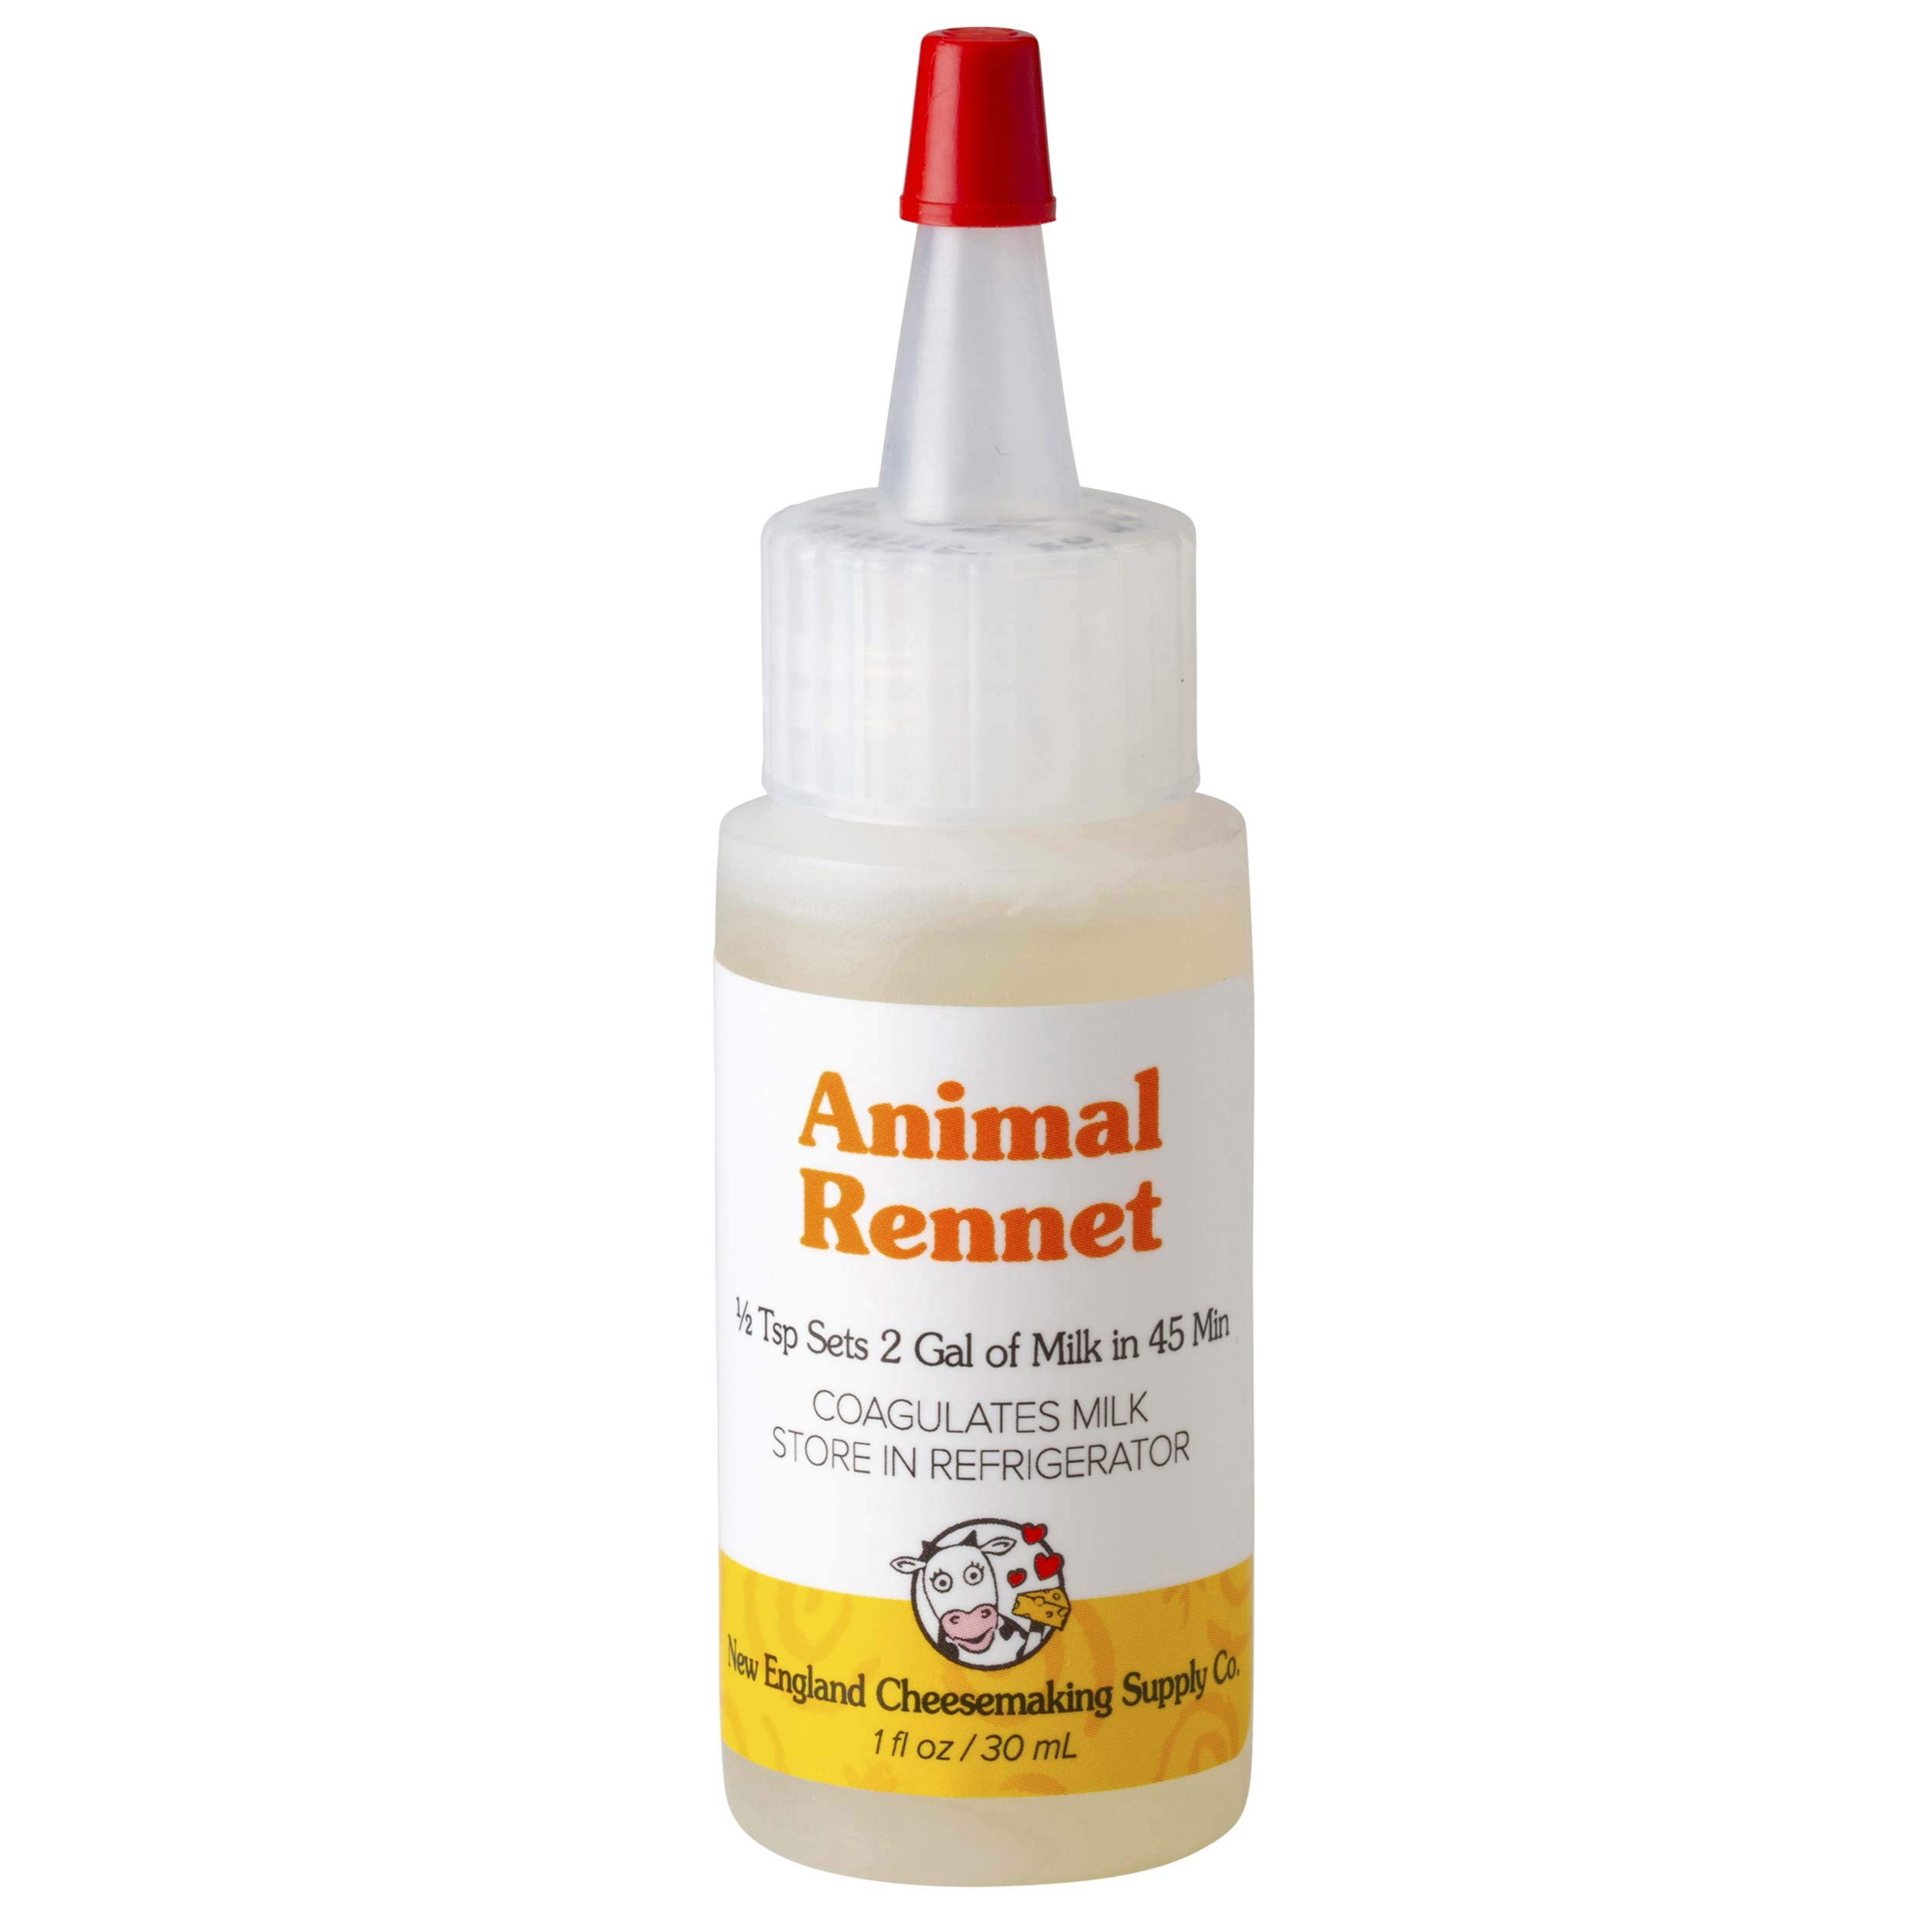 Liquid Rennet - Animal Rennet for Cheese Making